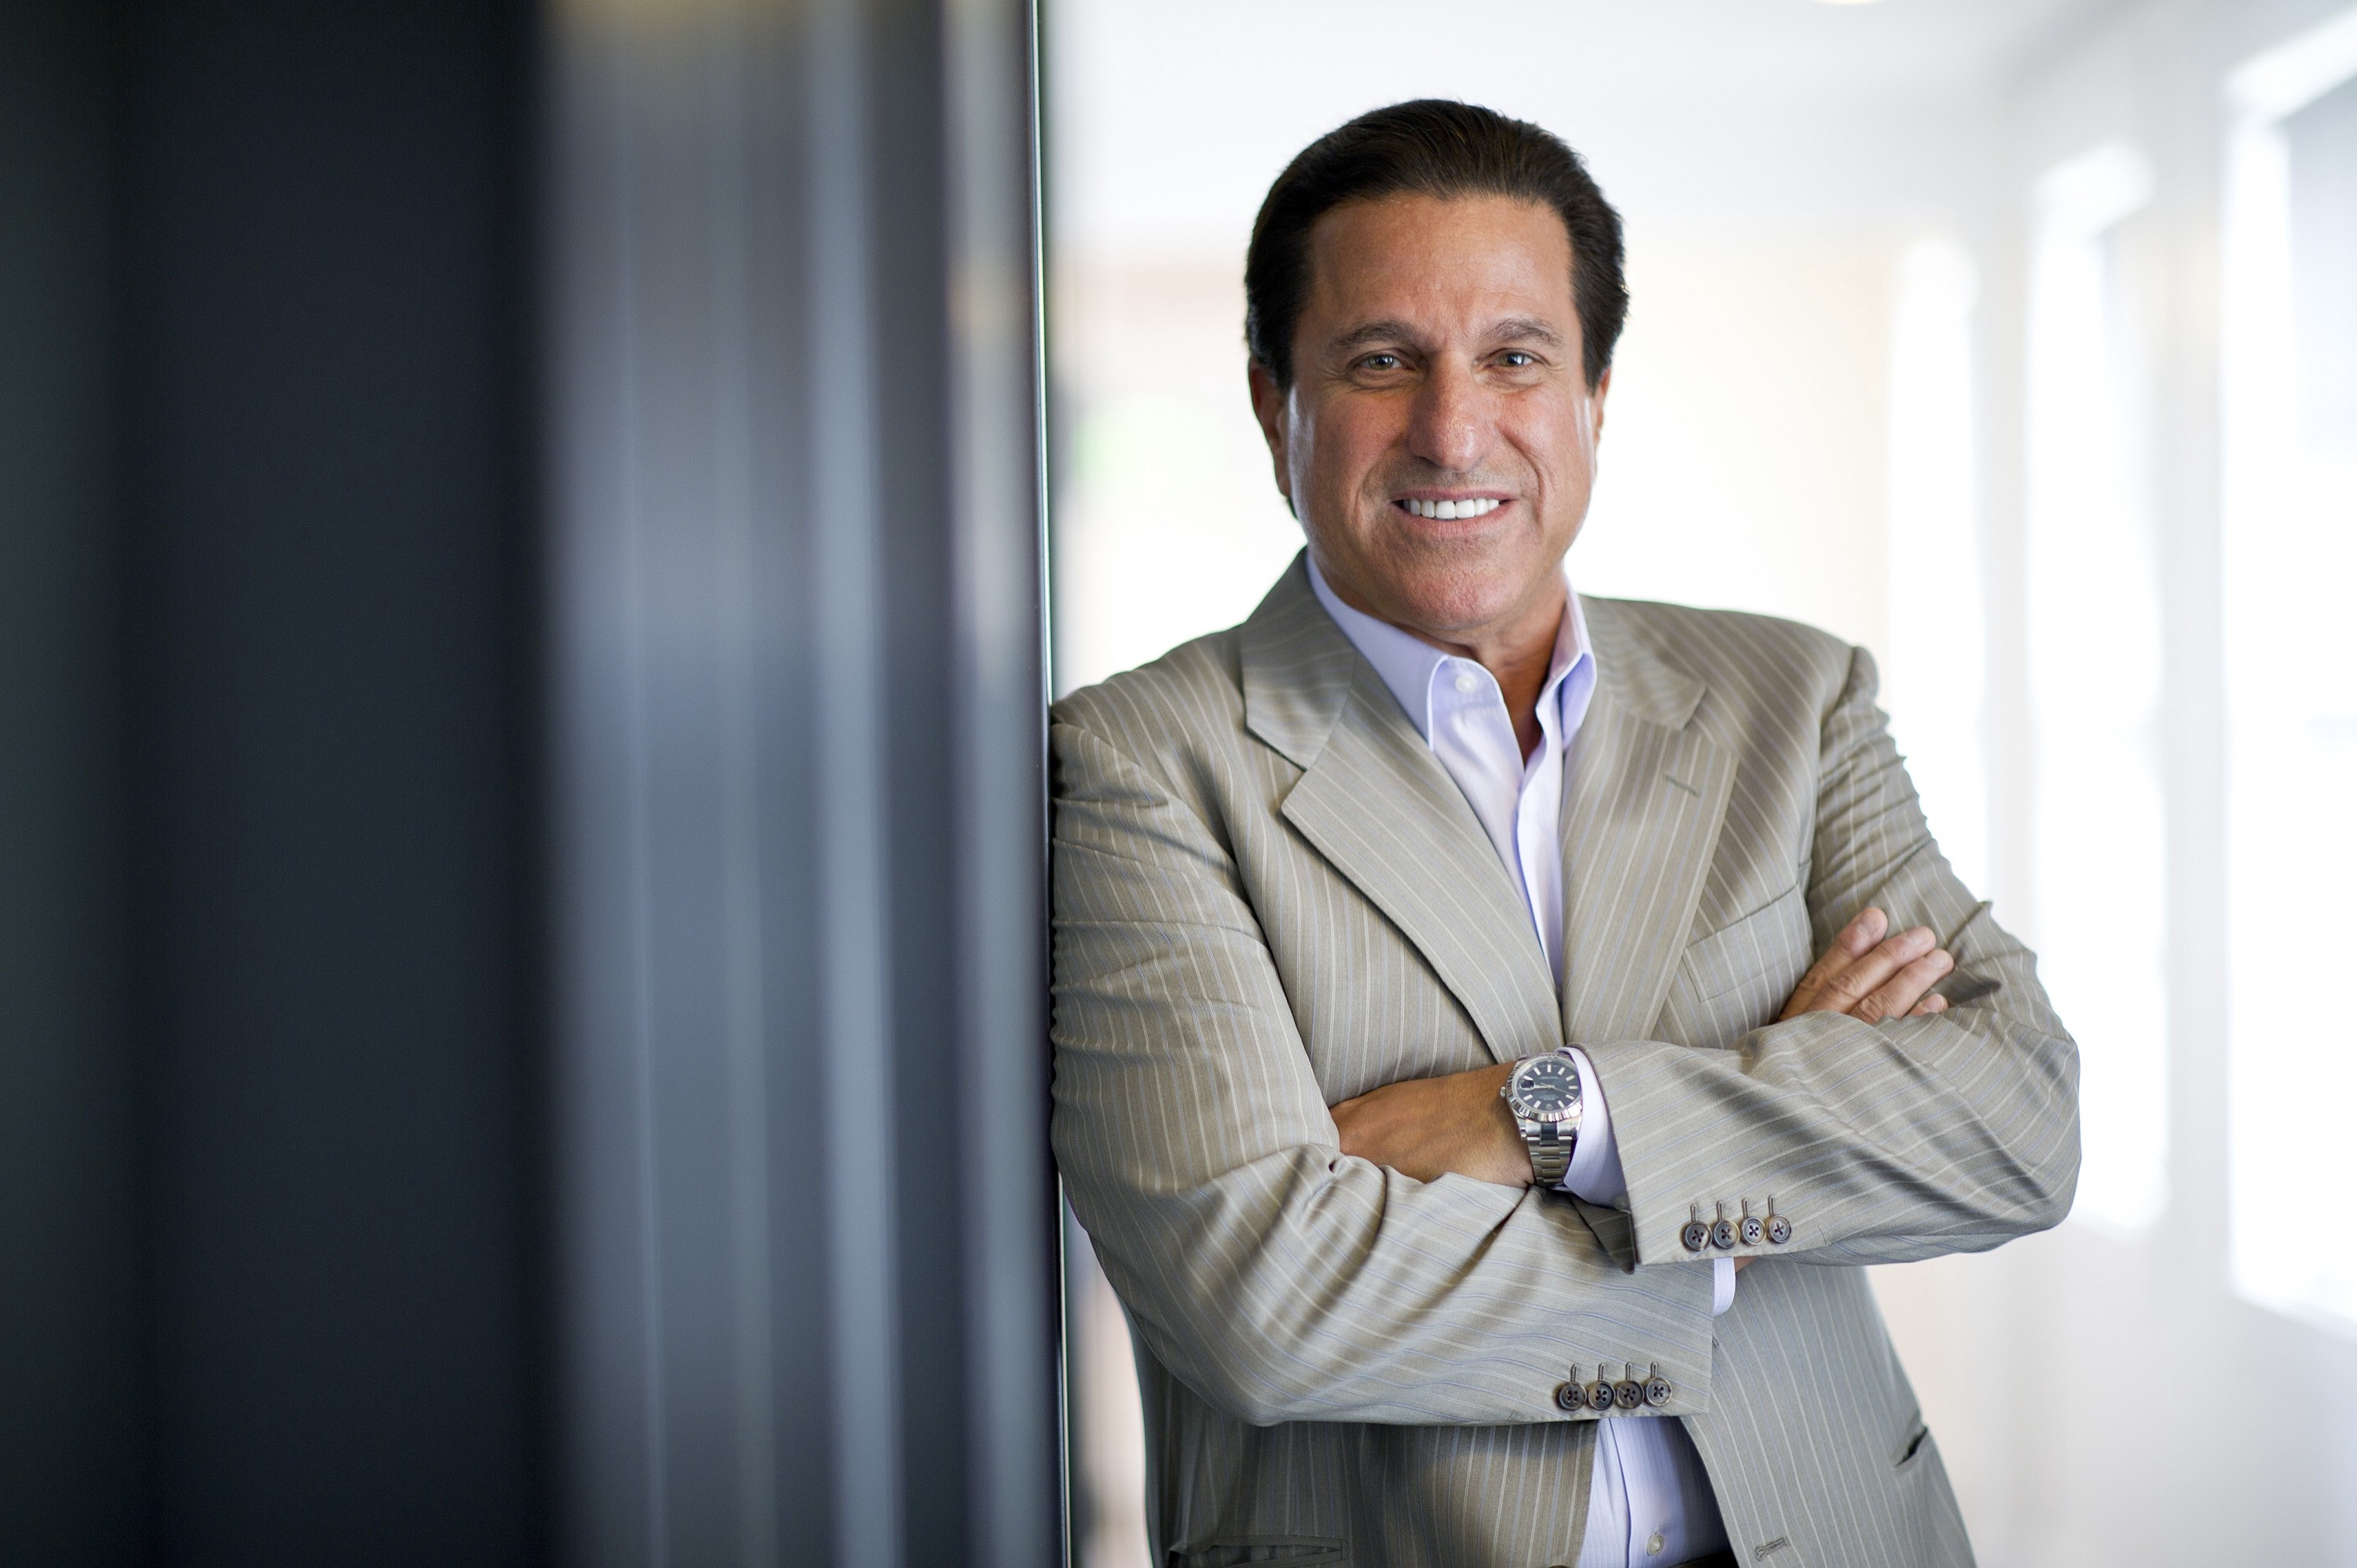 Interview: InterContinental Hotels Group CEO on the